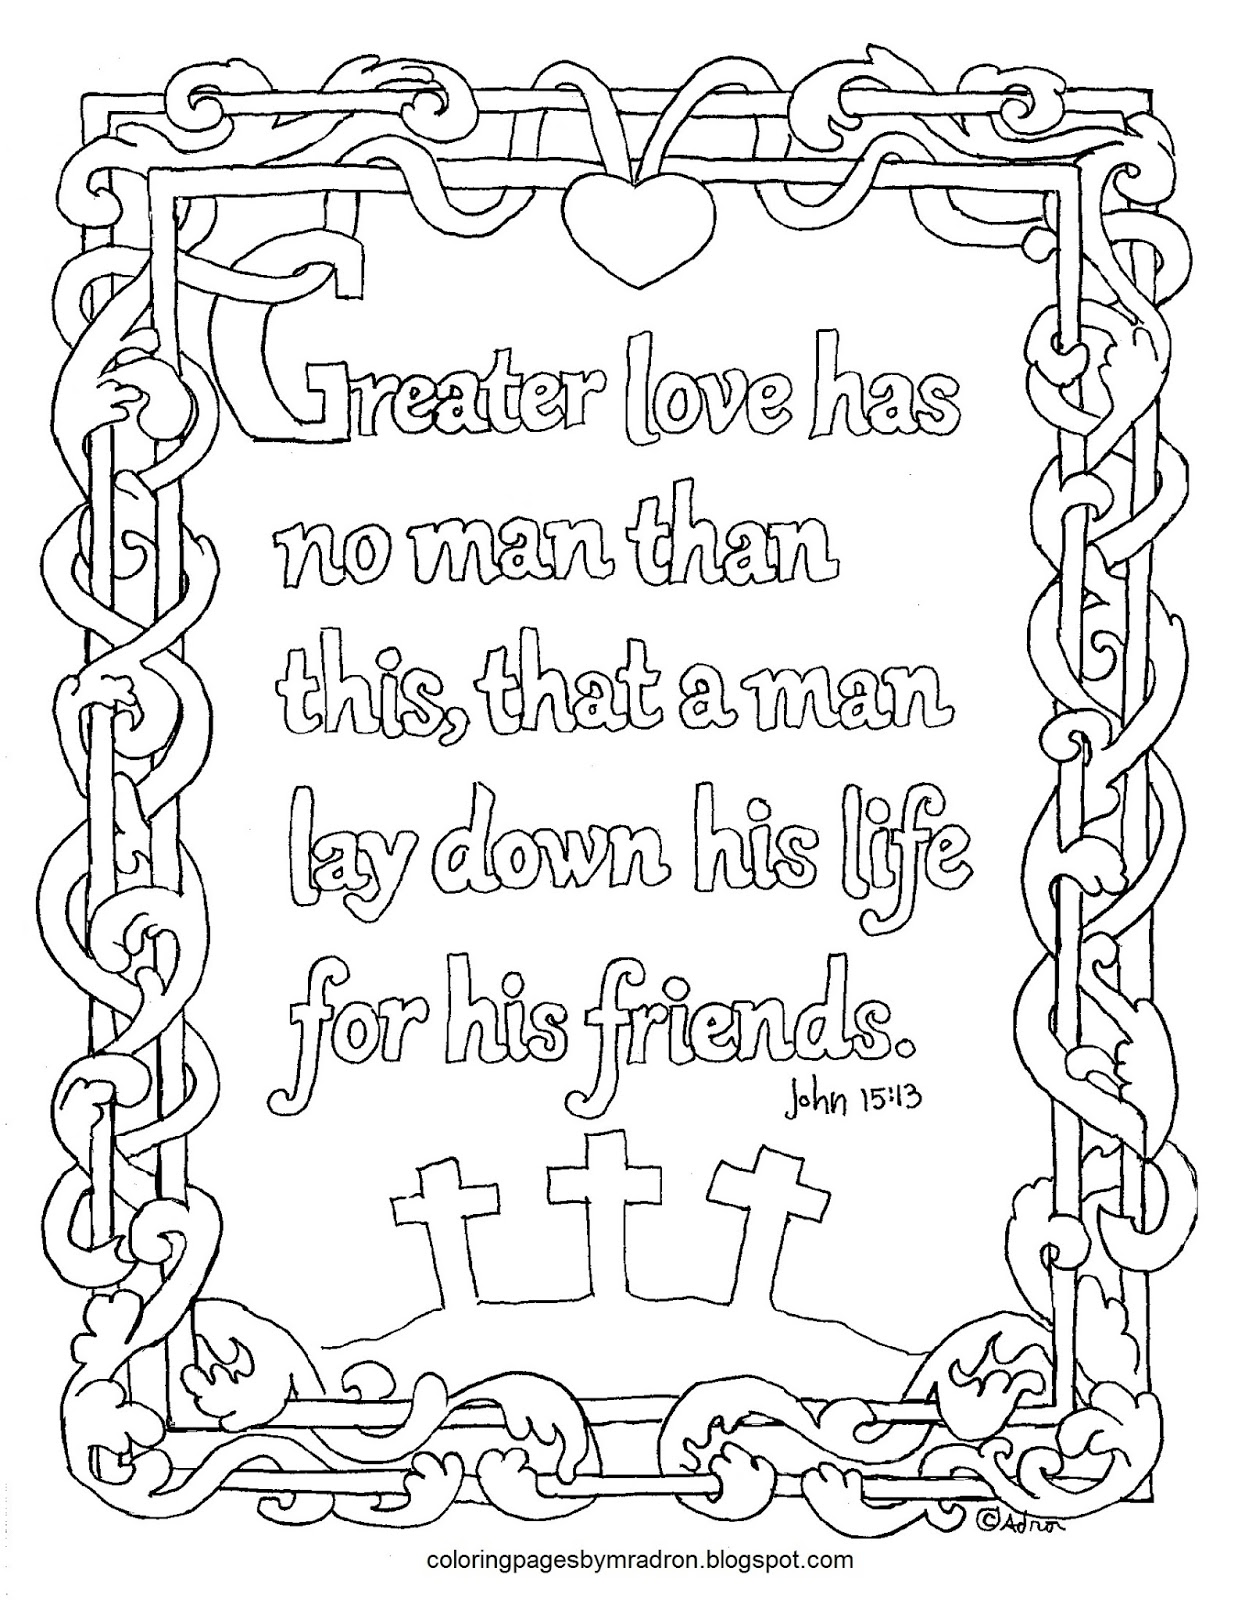 Printable John 1513 Coloring Page Like An Illuminated Text